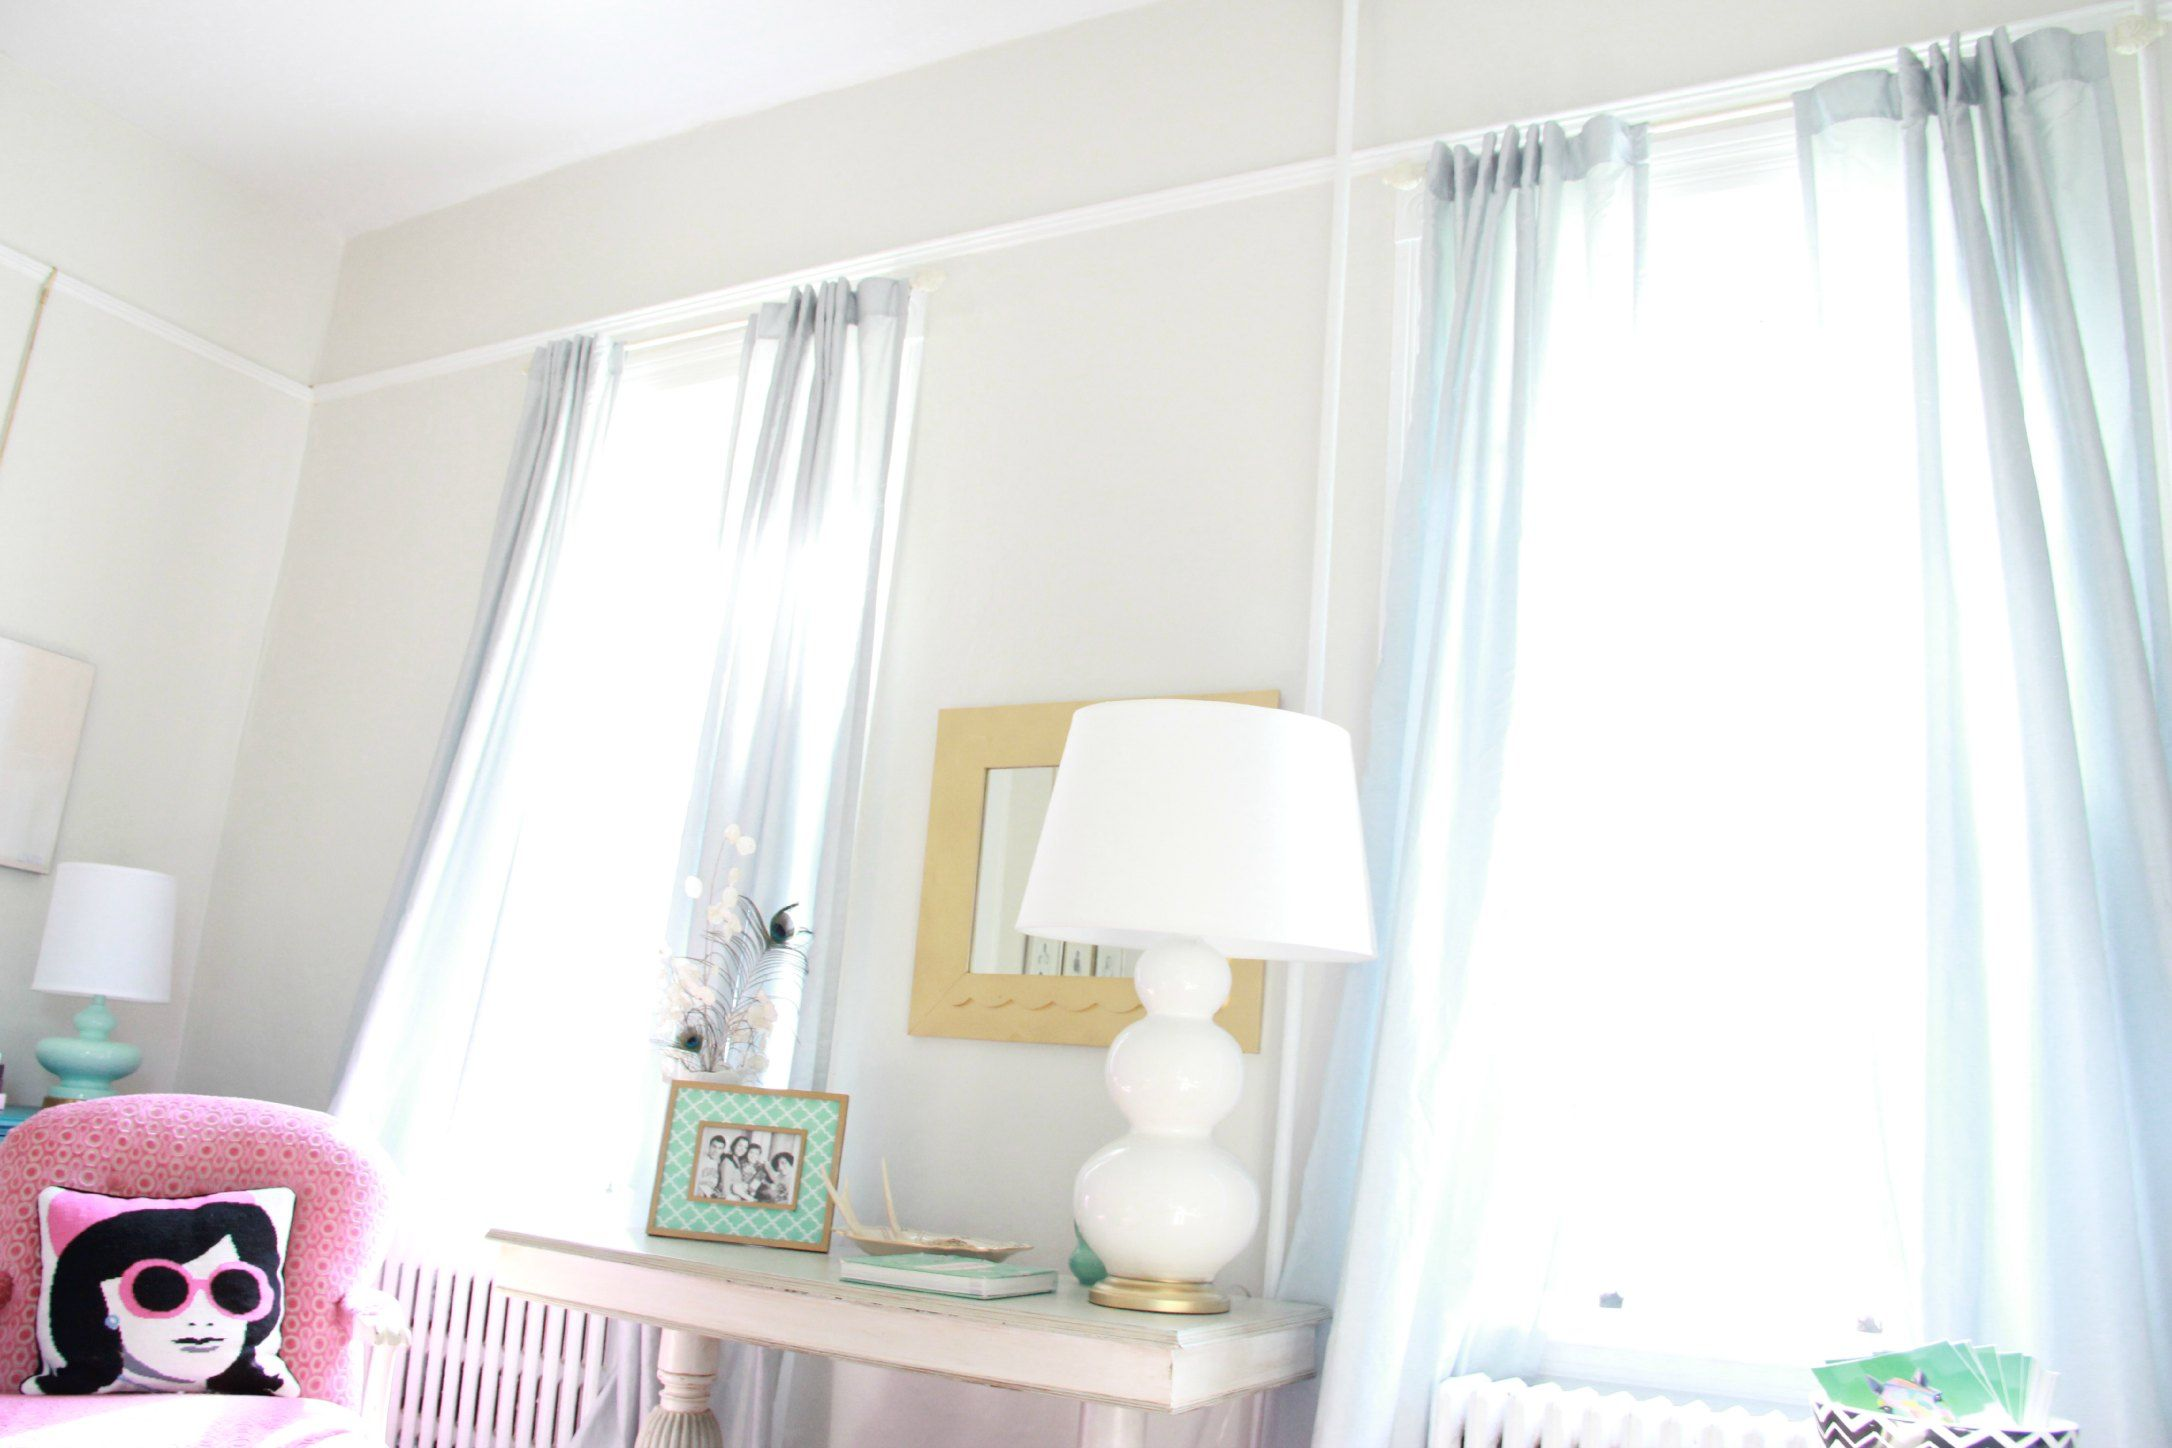 These Curtains Are The Martha Stewart Faux Silk In Rainwater From